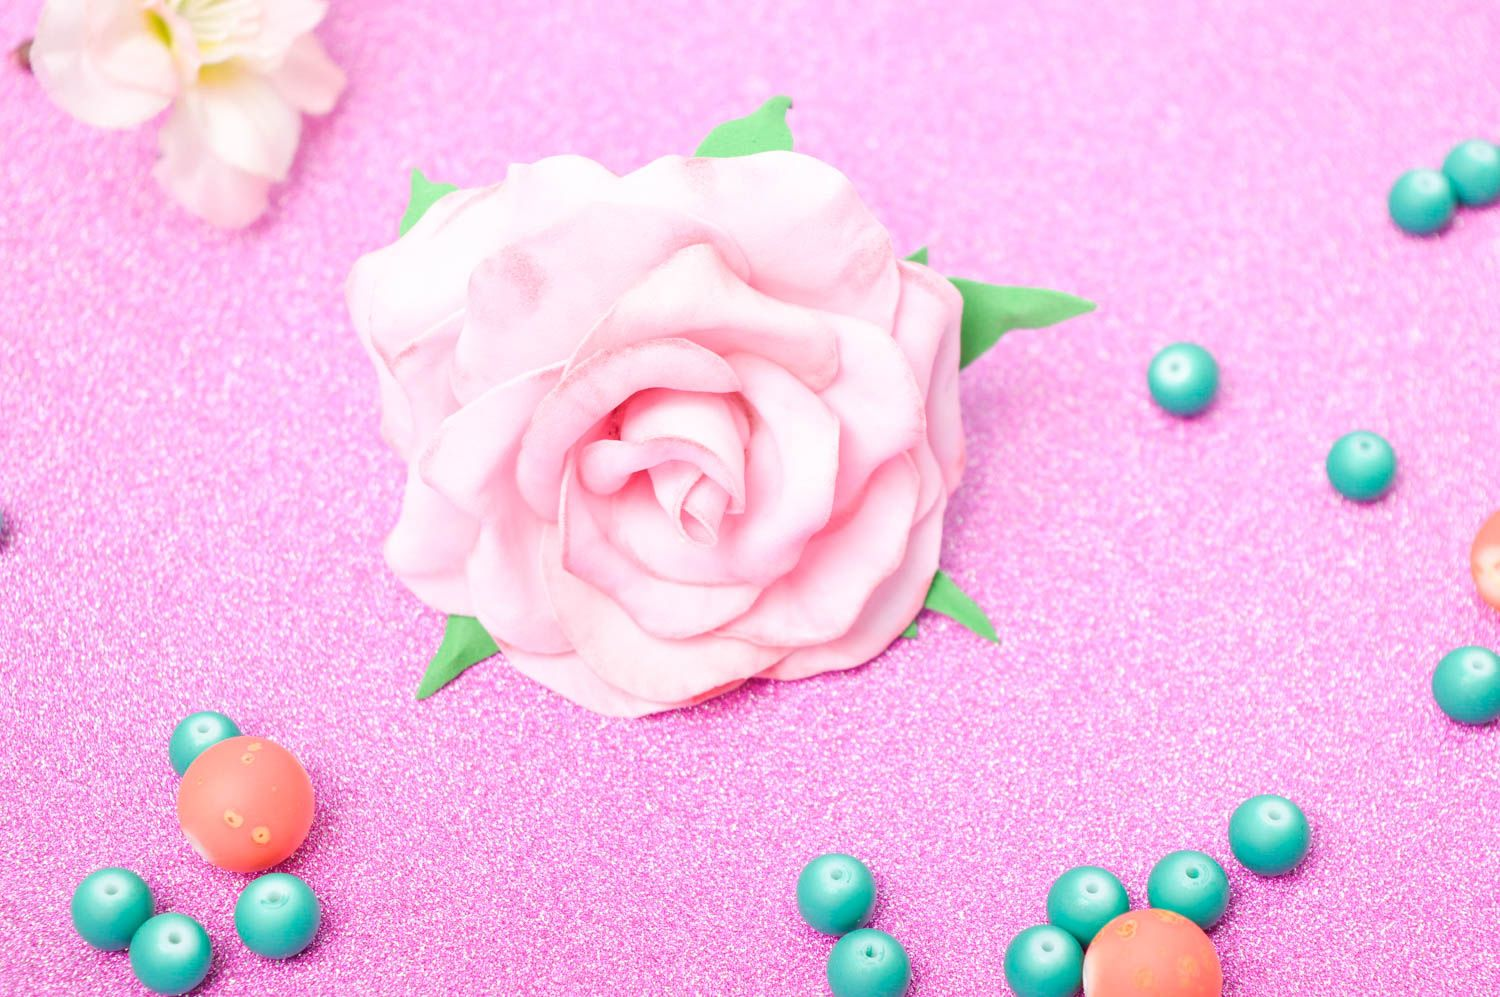 Handmade hairpin with flower foamiran hairpin hair accessories for women photo 1